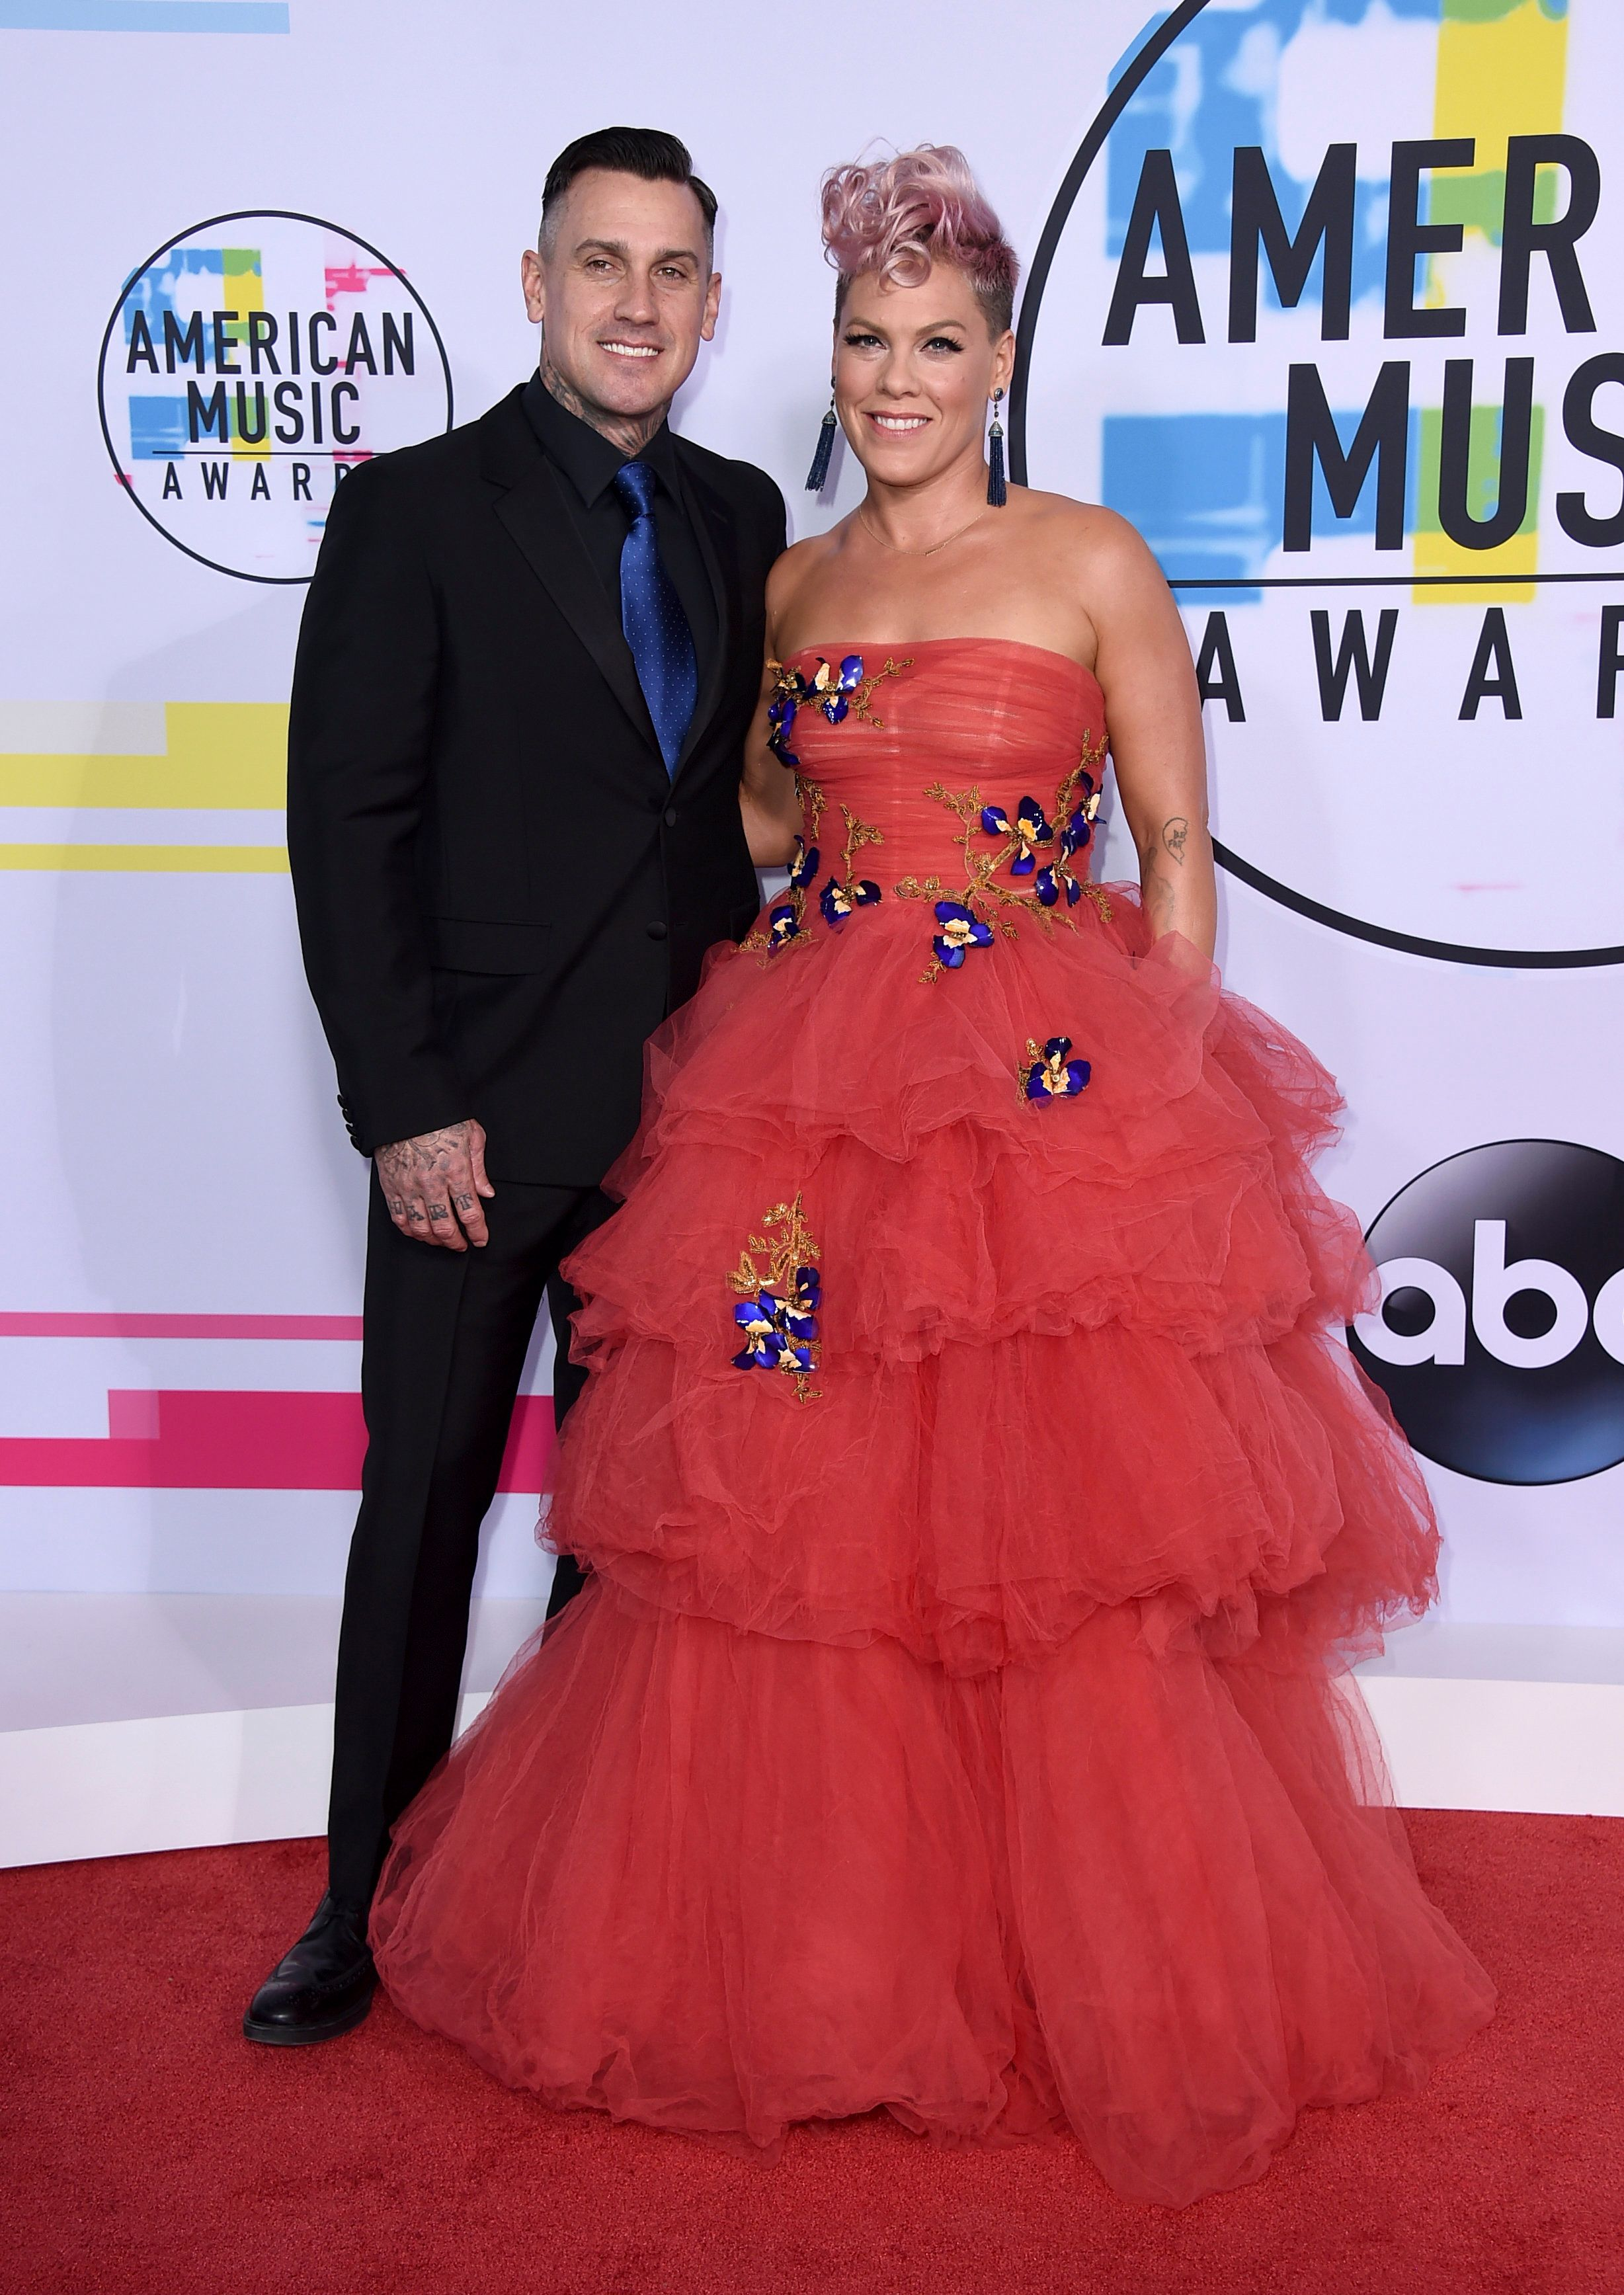 Carey Hart, left, and Pink arrive at the American Music Awards at the Microsoft Theater on Sunday, Nov. 19, 2017, in Los Angeles. (Photo by Jordan Strauss/Invision/AP)